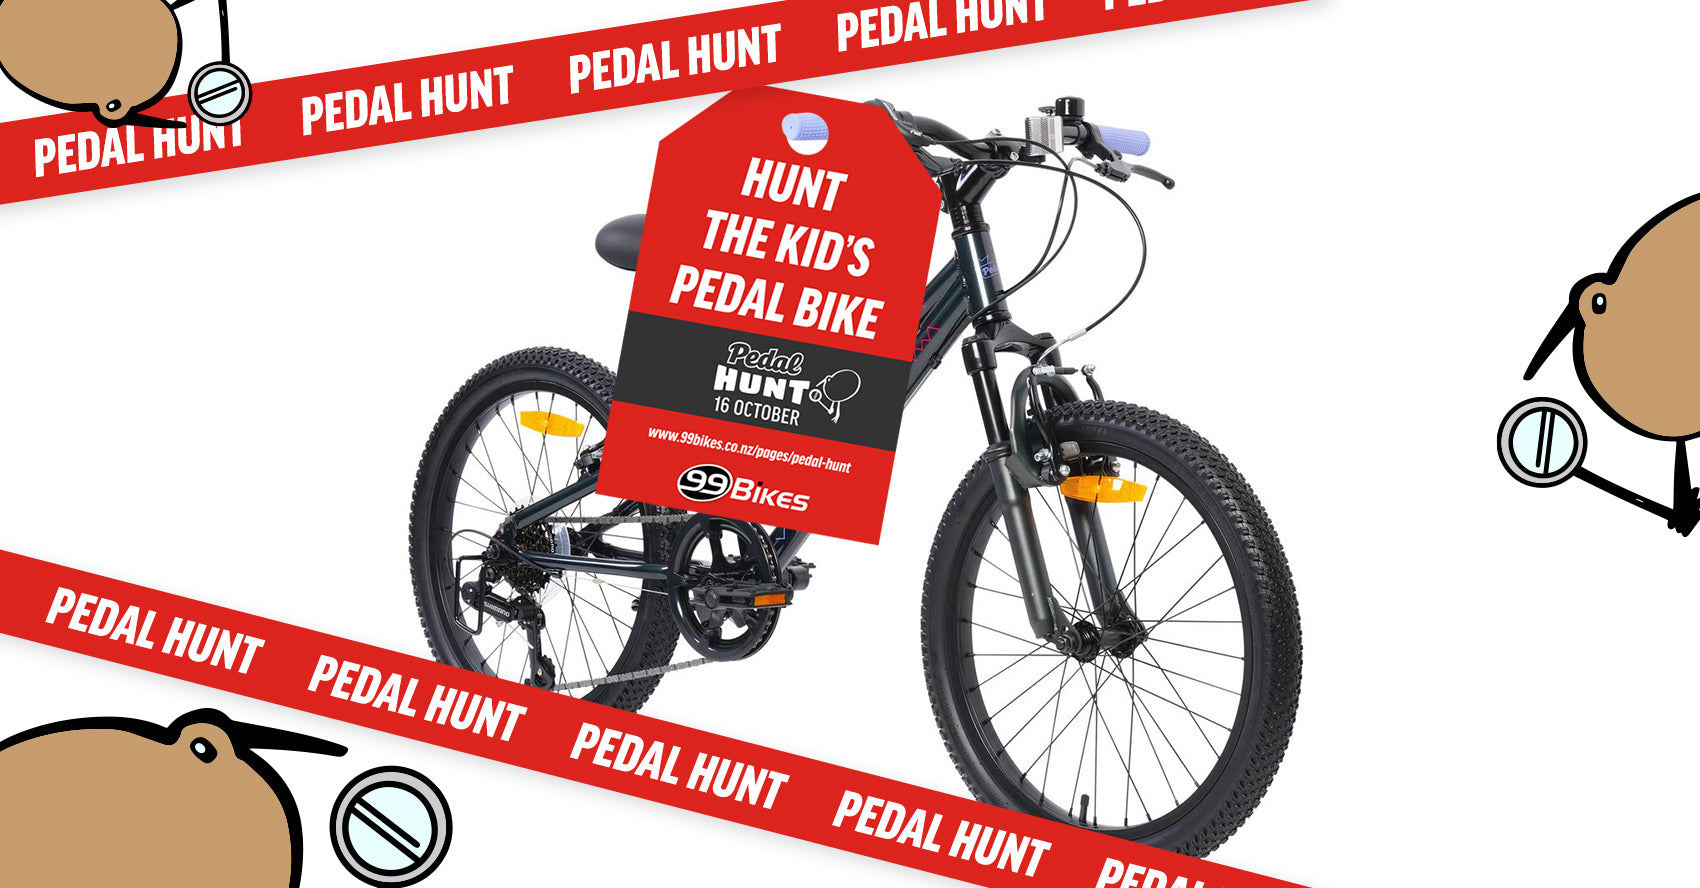 Hunt for this pedal bike and win